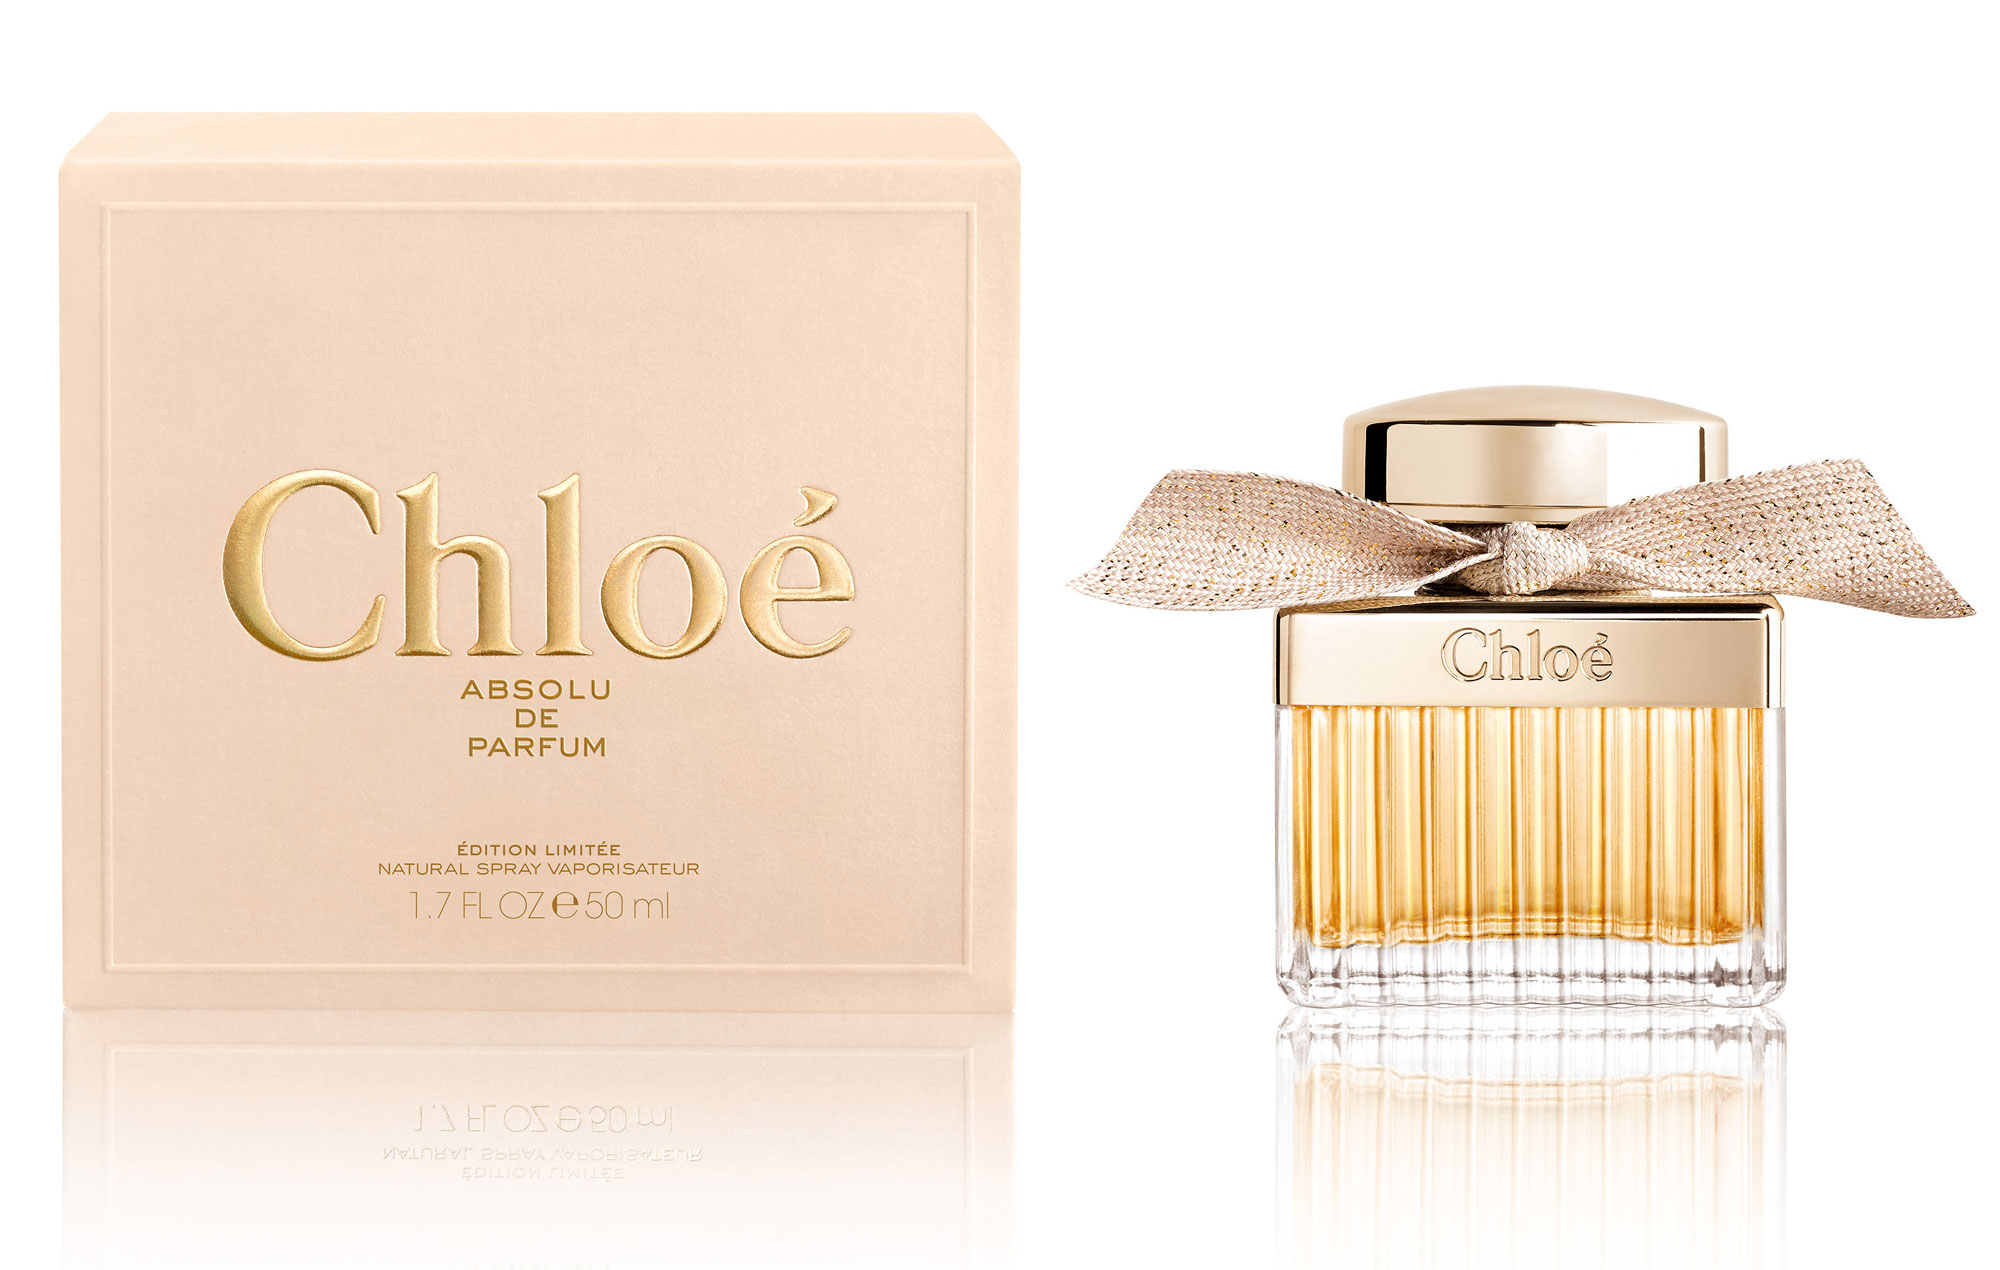 Parfum Diamantform Chloé Absolu De Parfum Chloé For Women